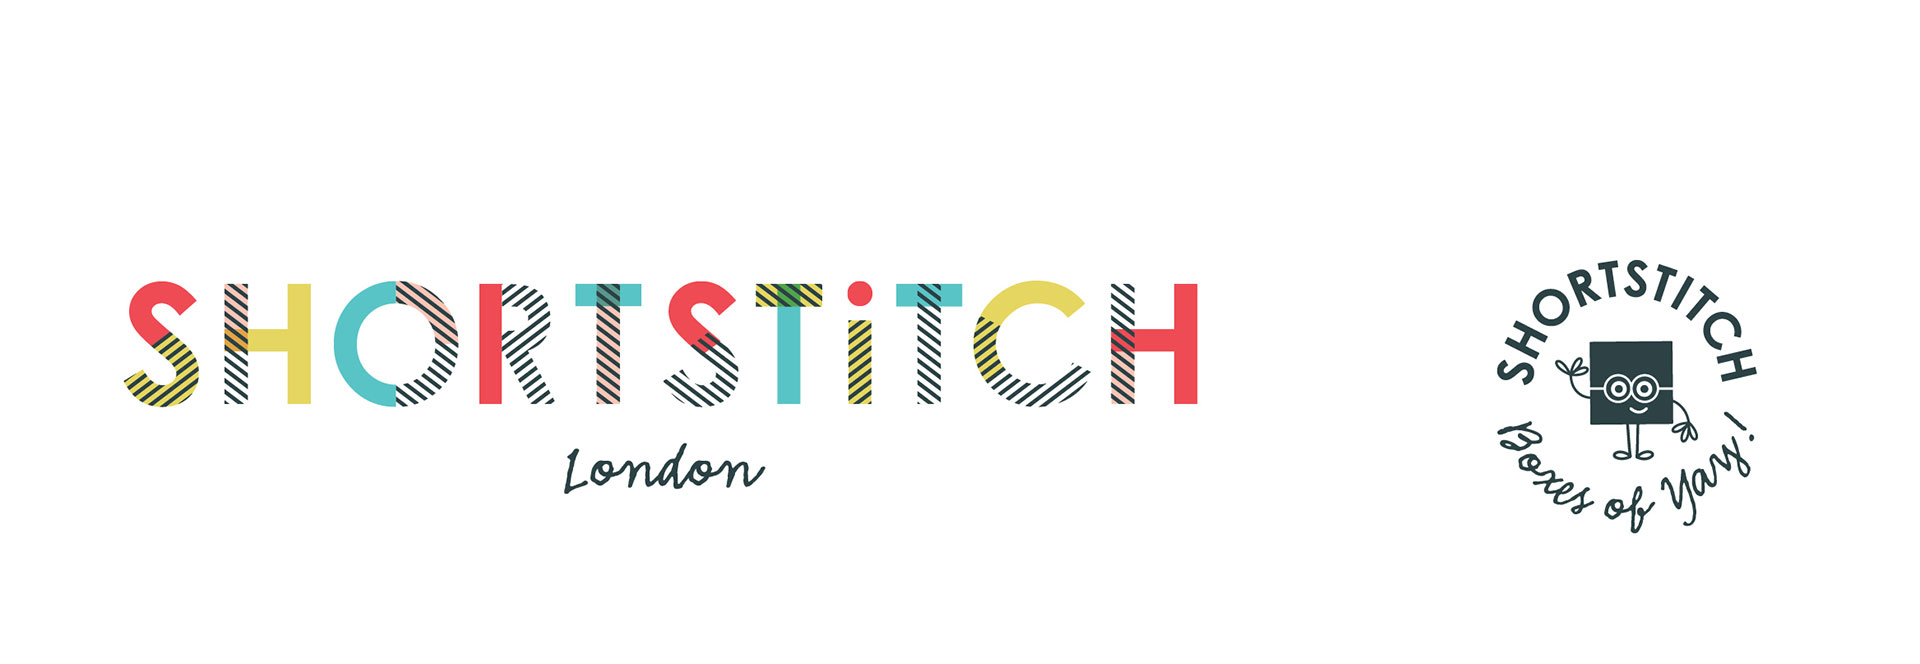 junction-single-project_shortstitch_aw01-12